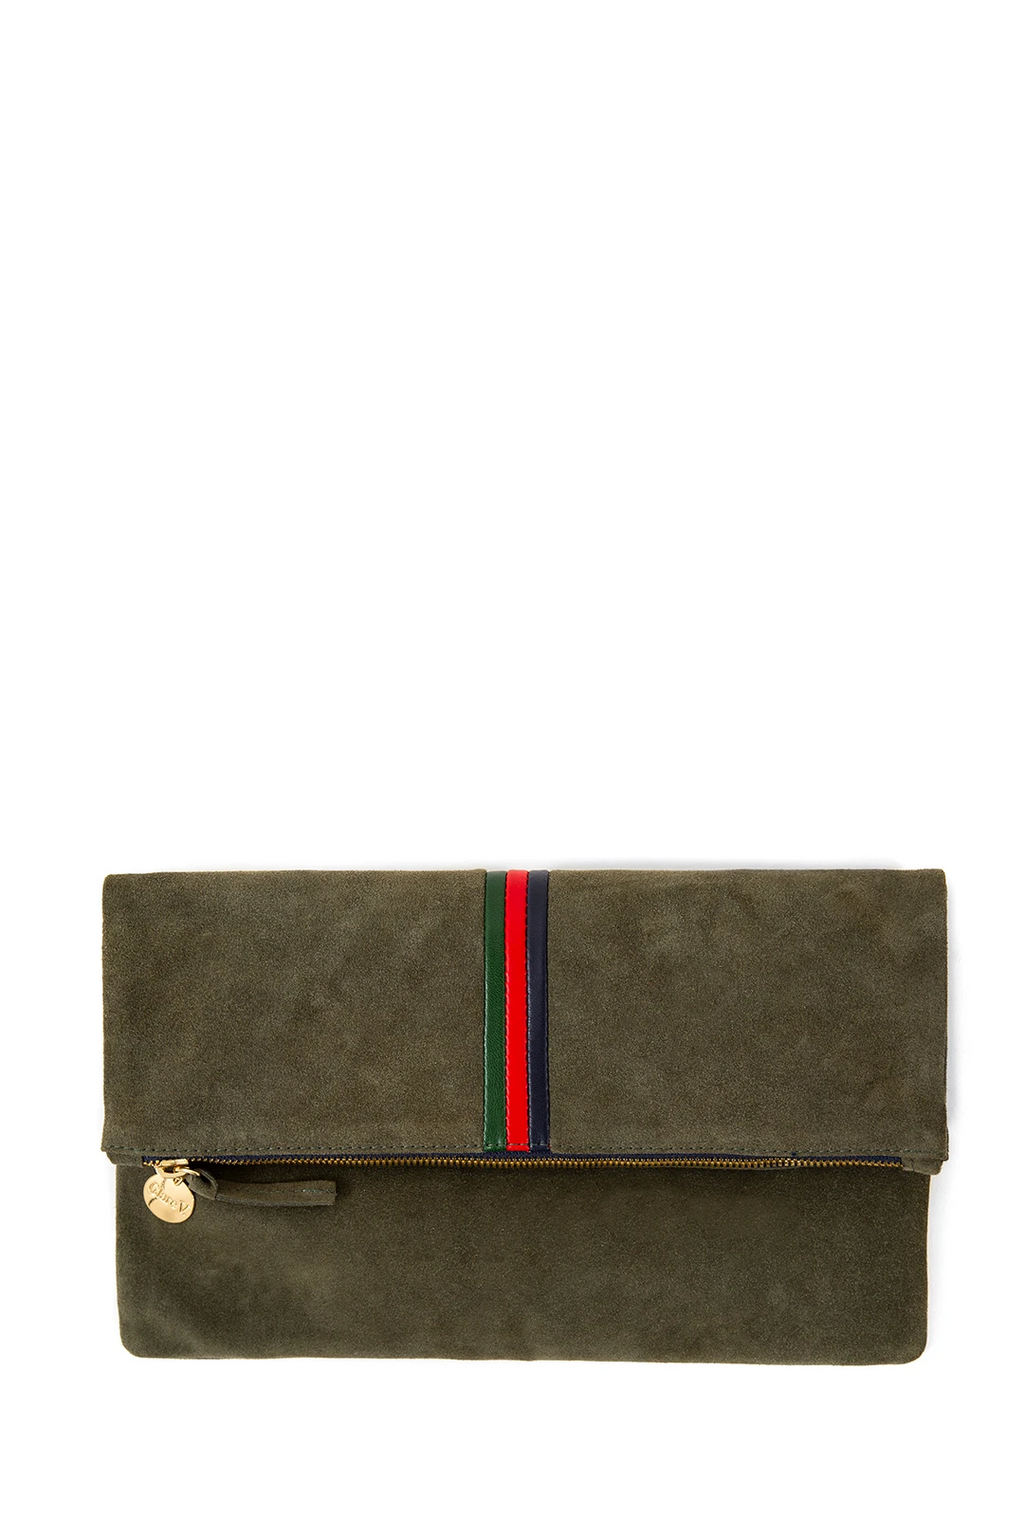 clare v. foldover clutch army suede